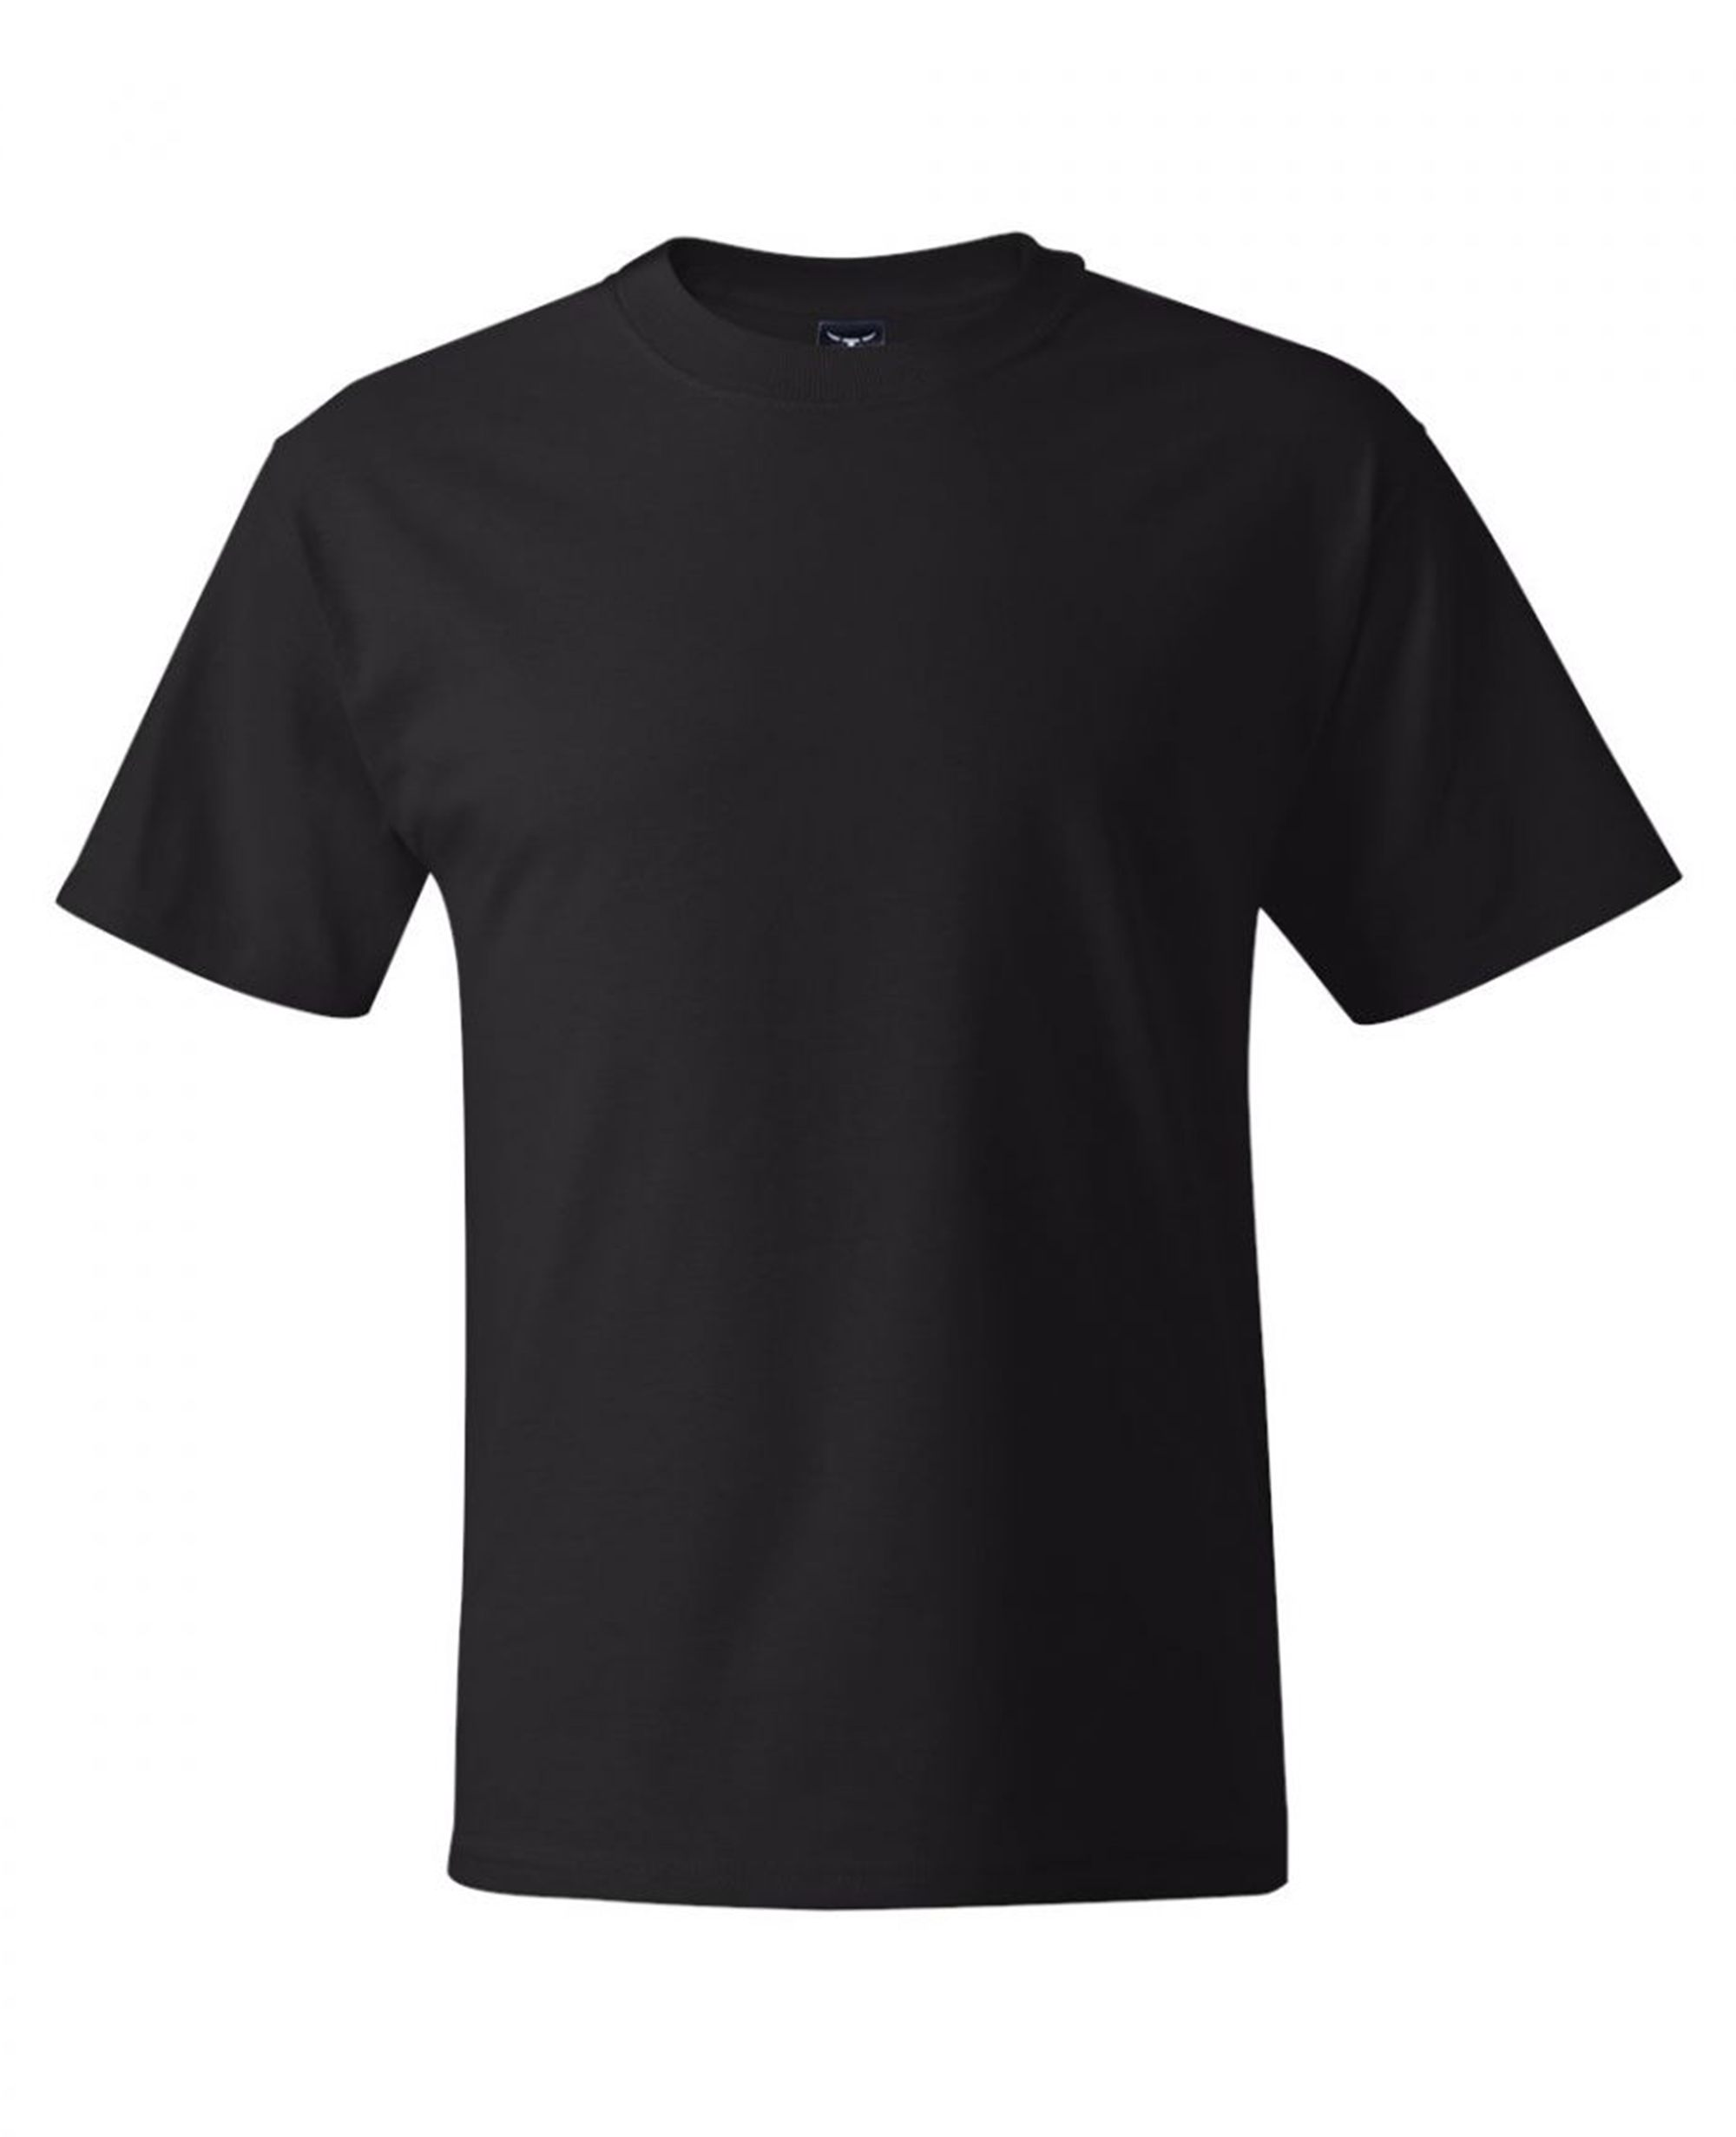 2 pack Beefy Heavyweight T-shirt - T-Shirts - Hanes - BRANMA